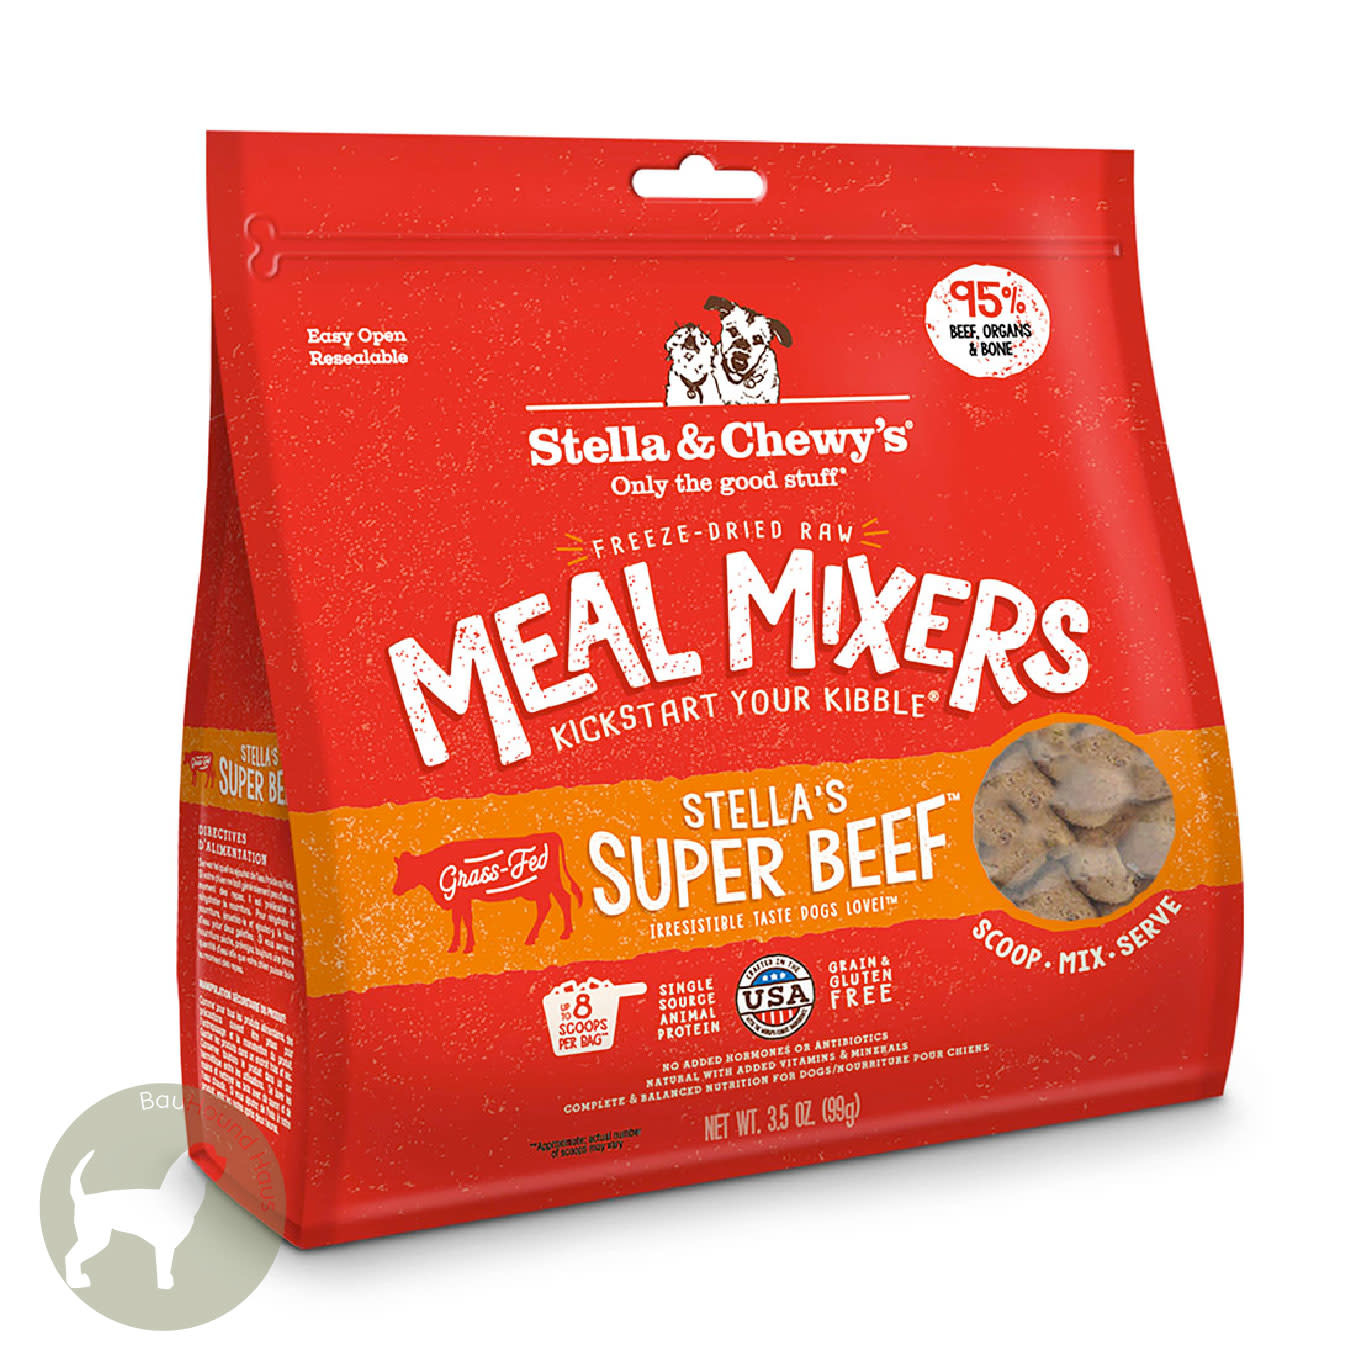 Stella & Chewy's Stella & Chewy's Meal Mixer Super Beef, 9oz